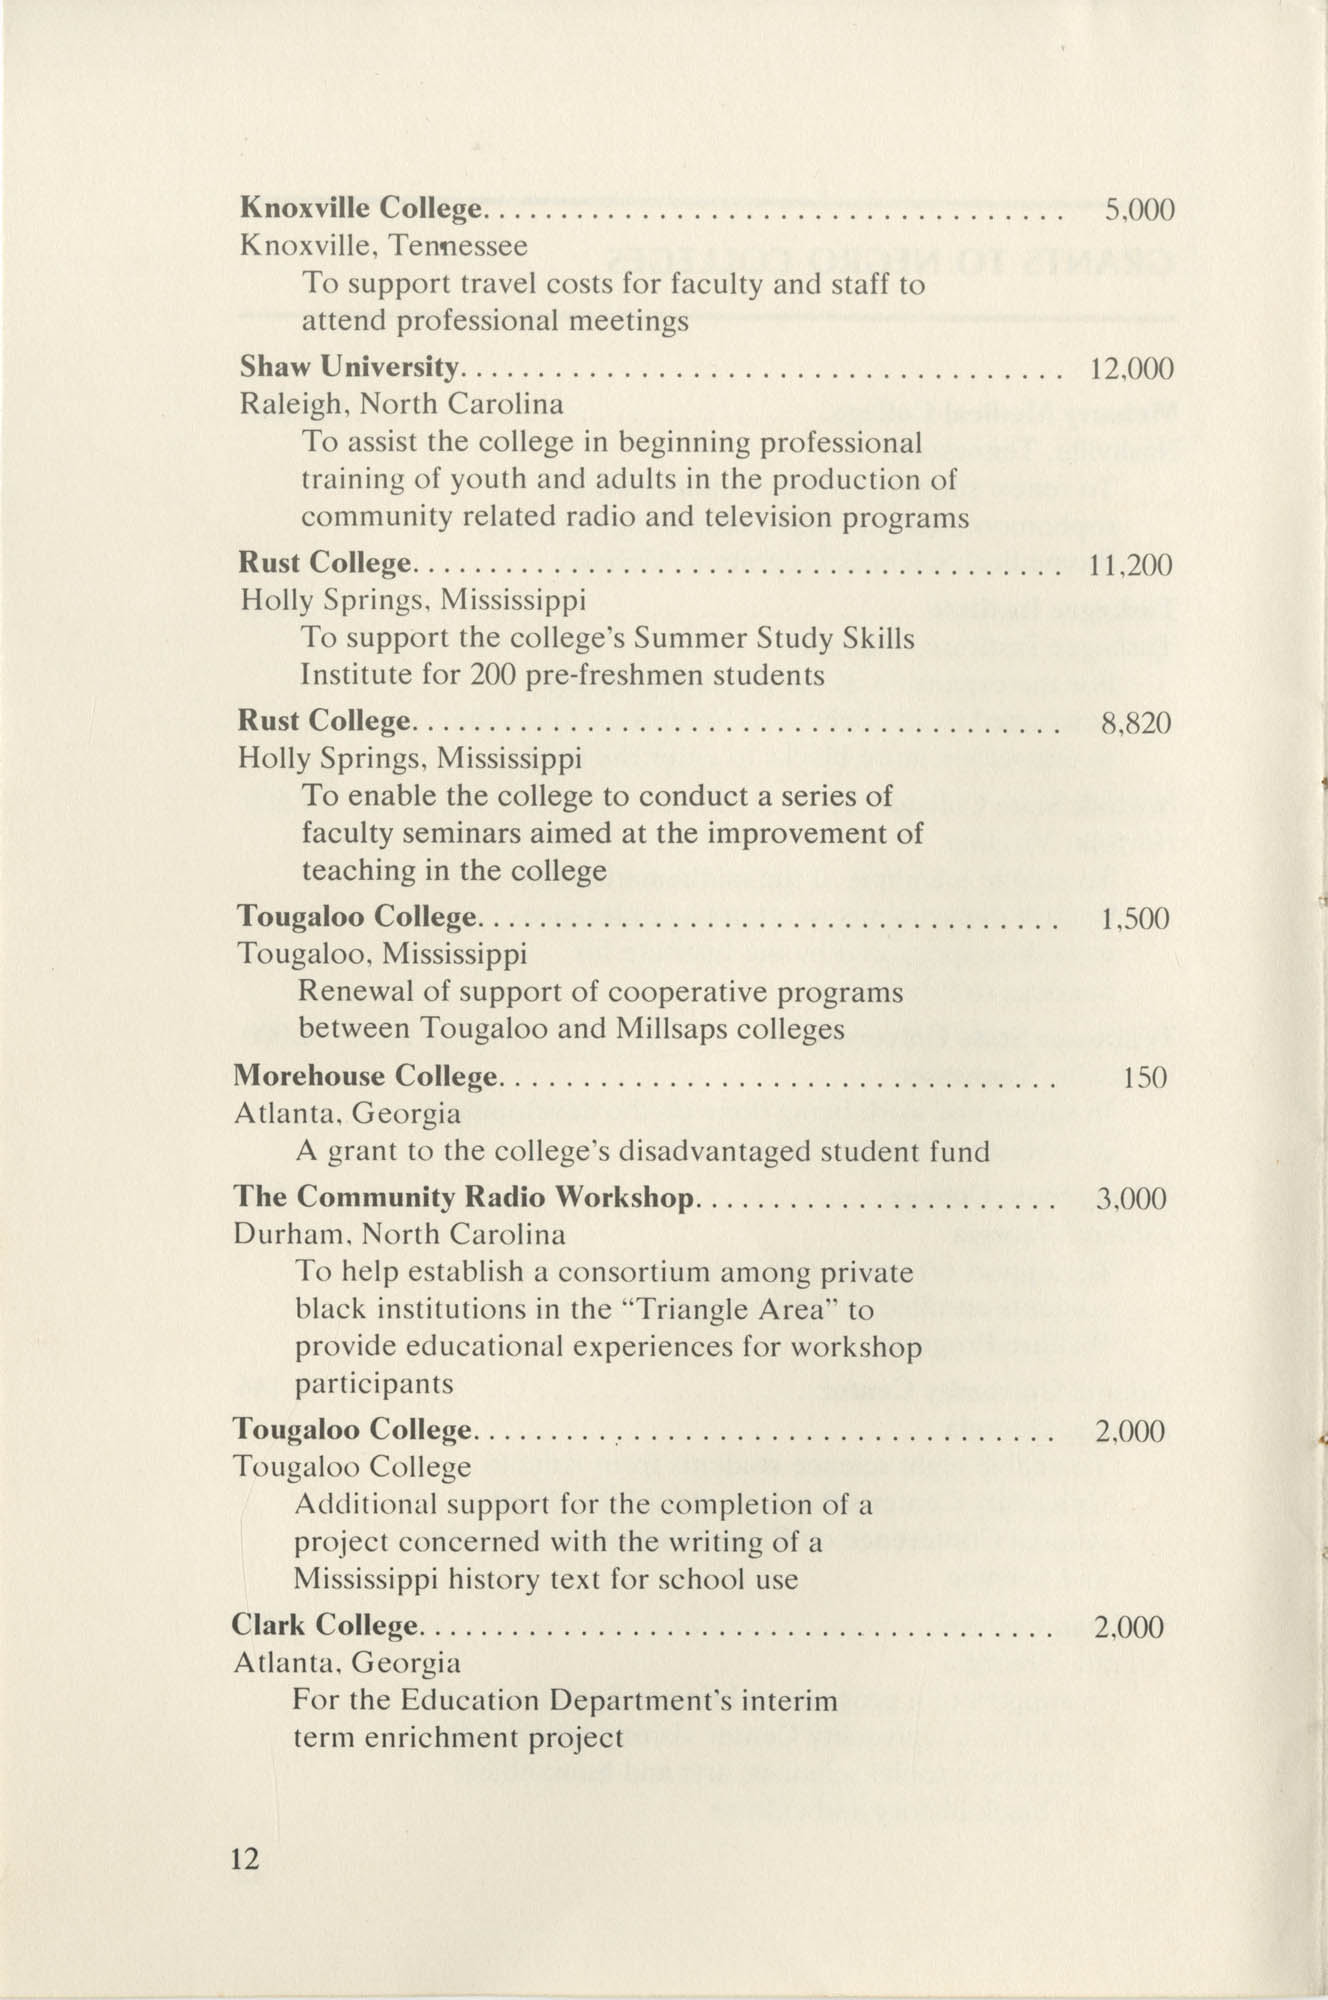 Southern Education Foundation, Annual Report 1971-1972, Page 12